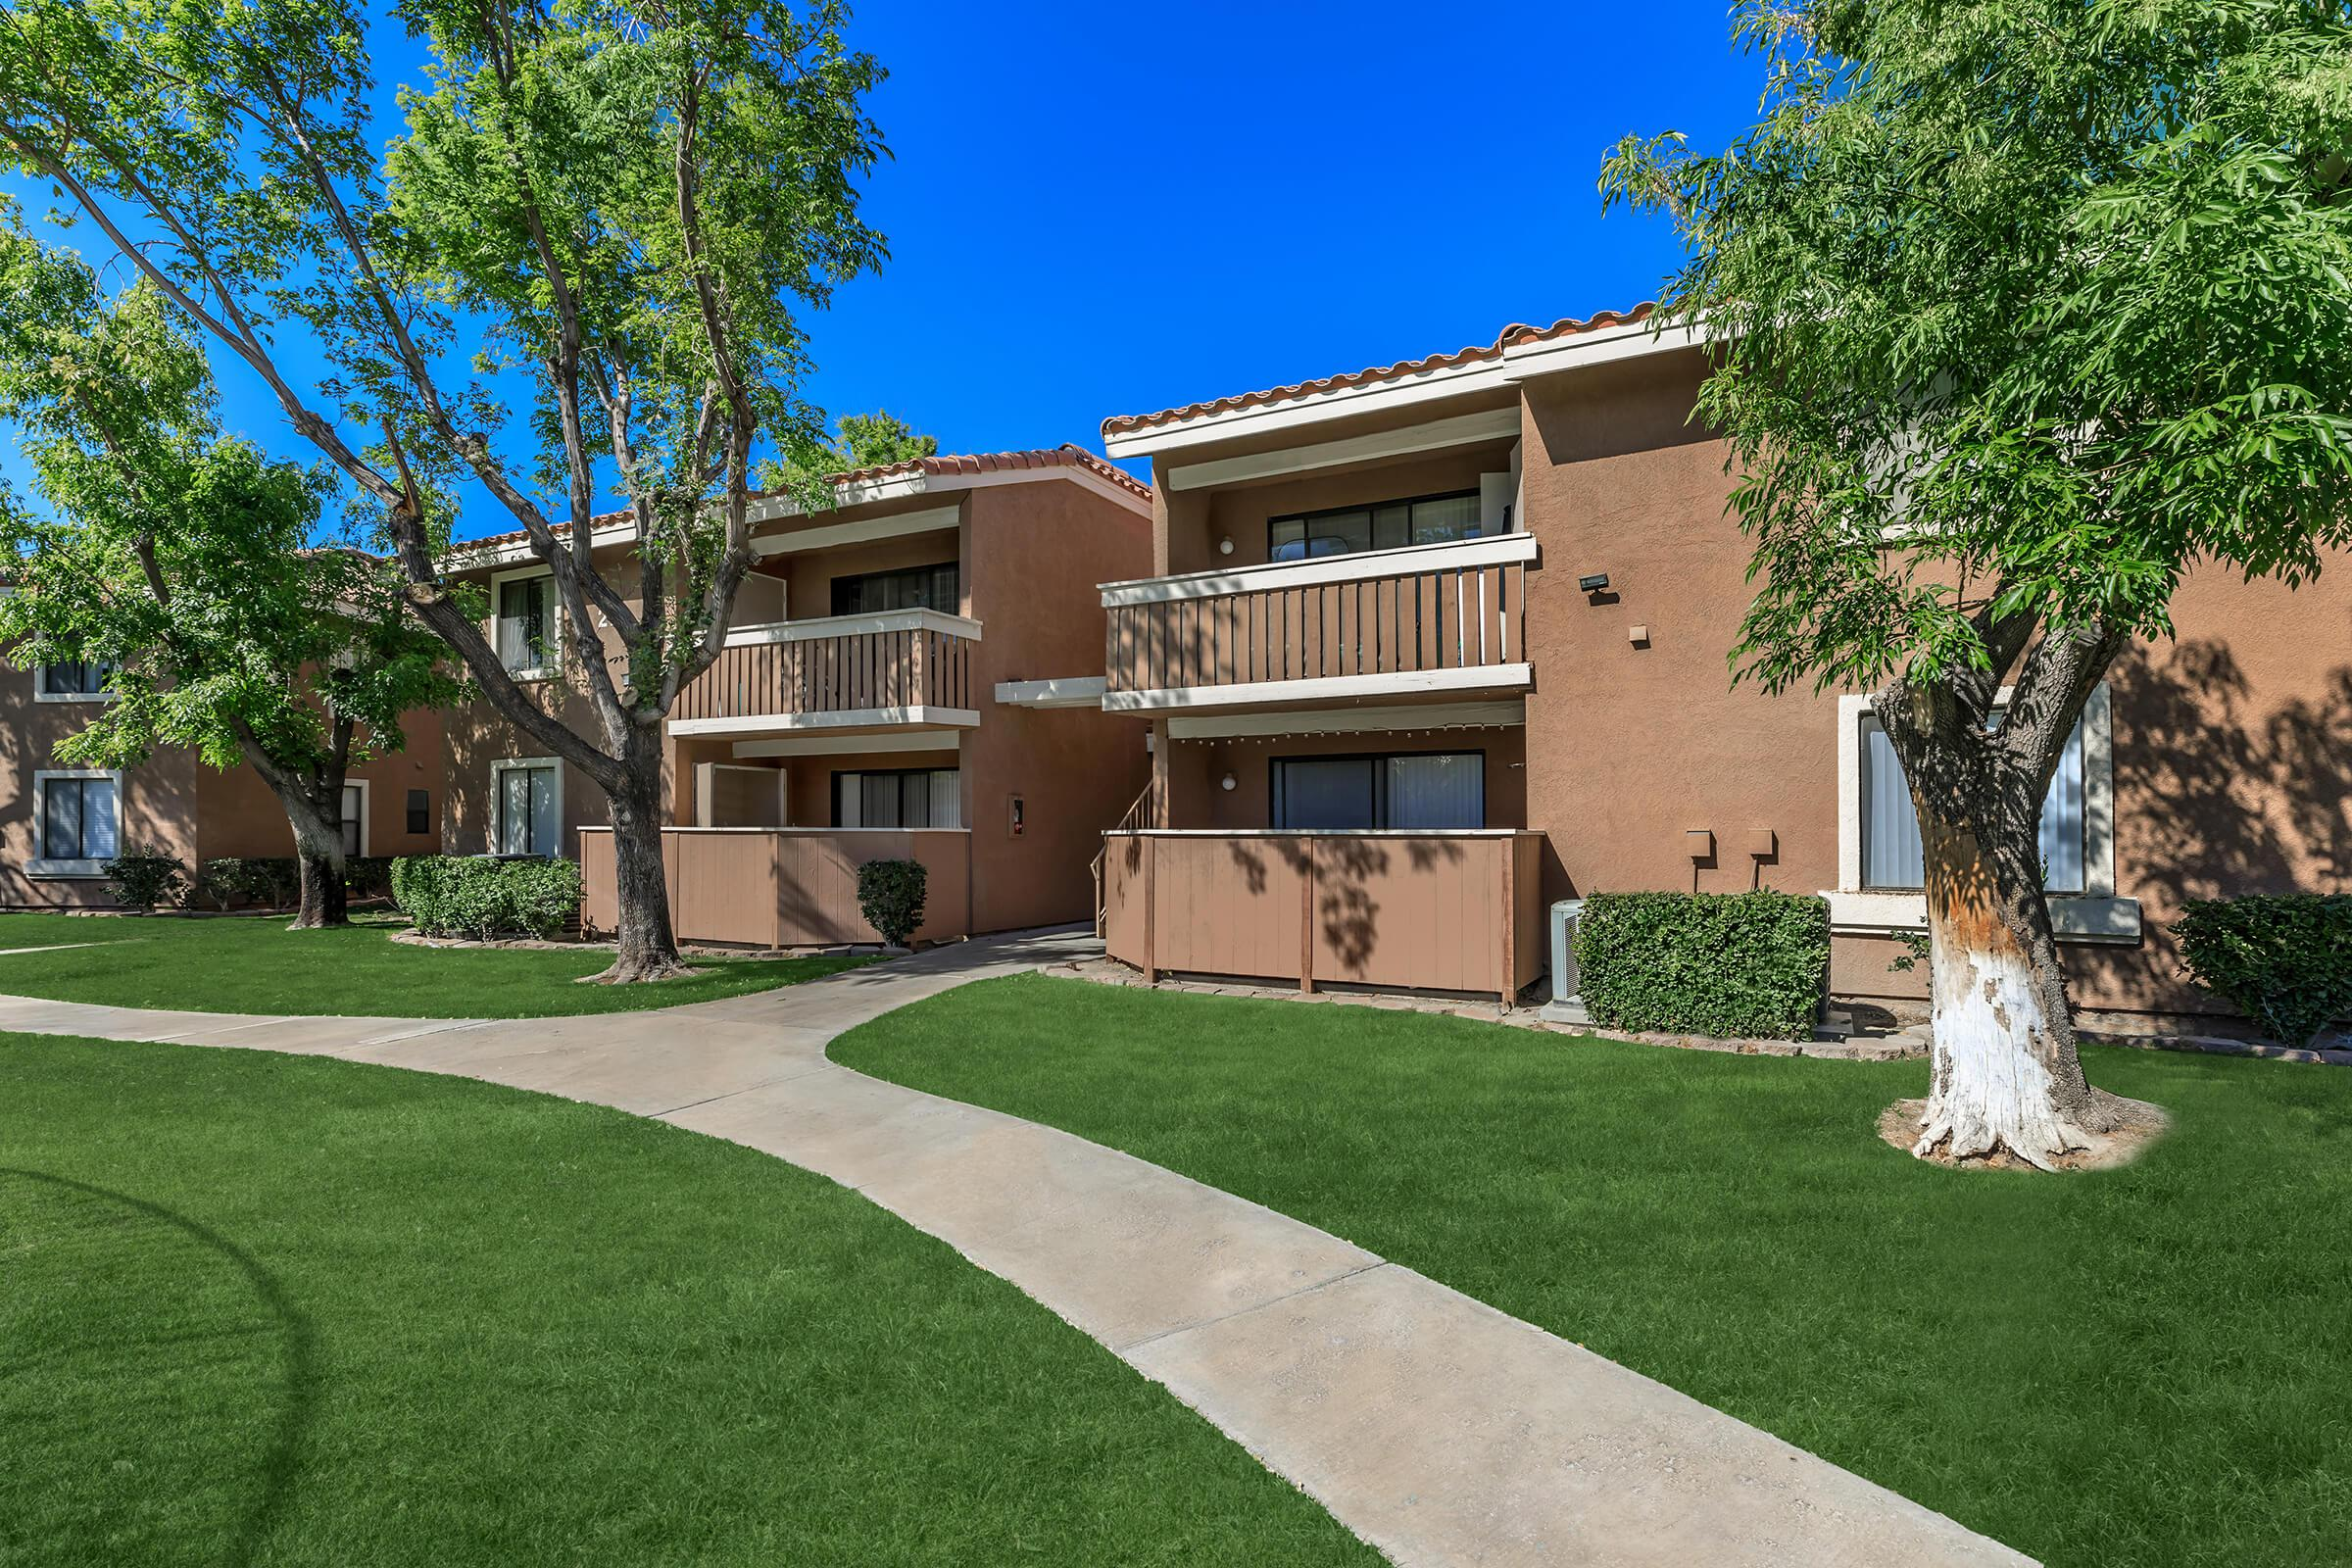 YOUR NEW APARTMENT FOR RENT IN INDIO, CA AWAITS